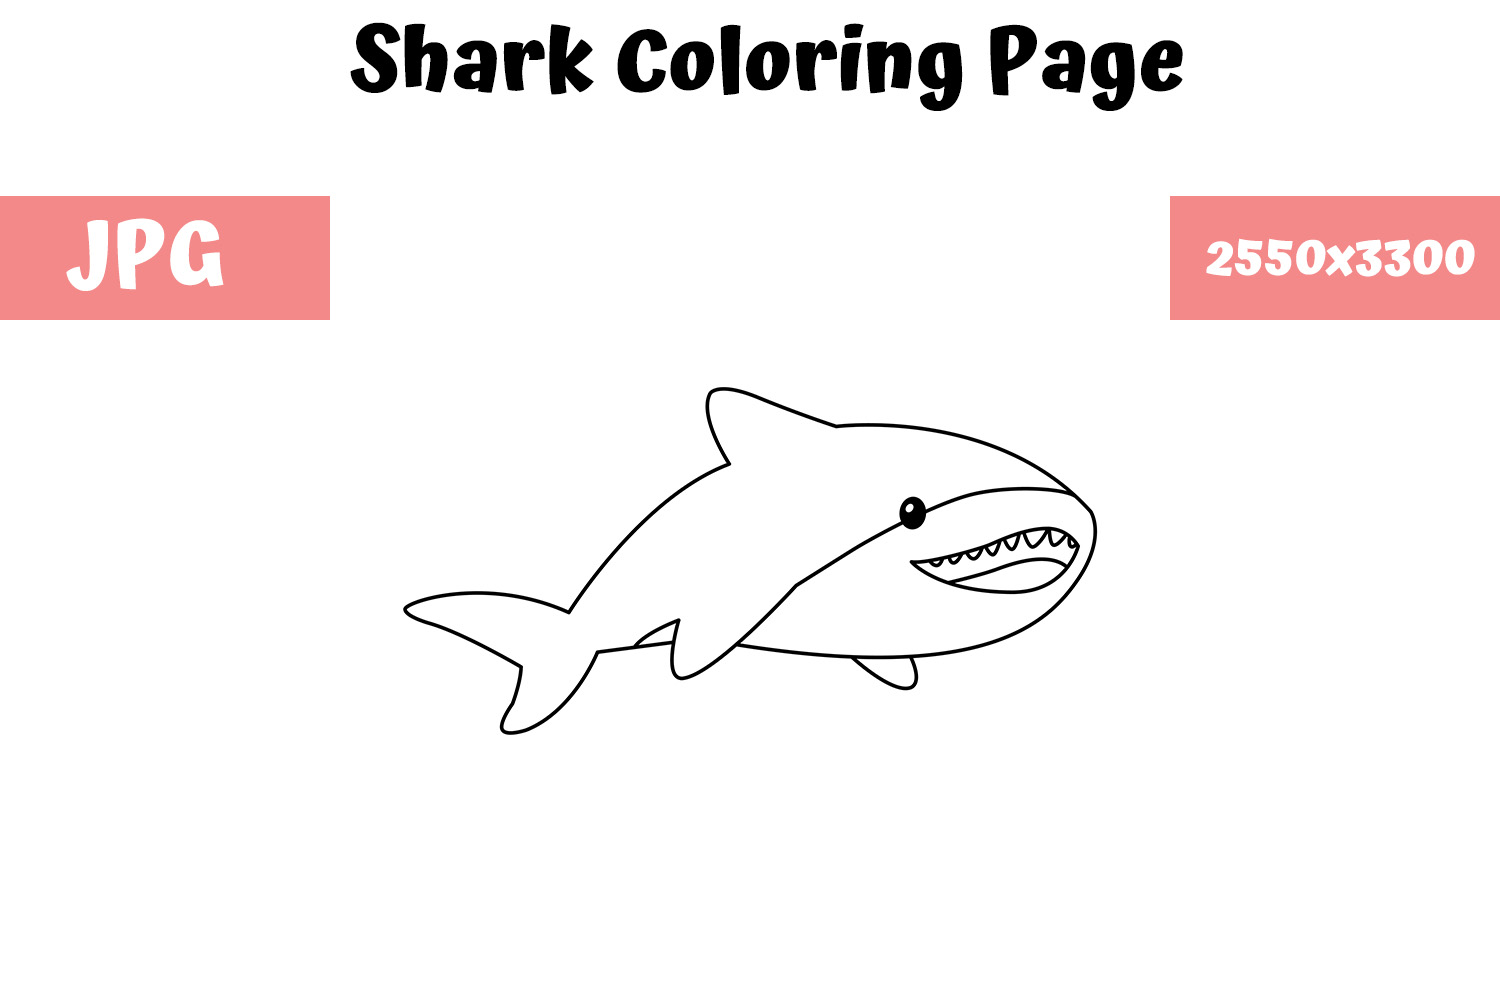 - Shark Coloring Book Page For Kids (Graphic) By MyBeautifulFiles